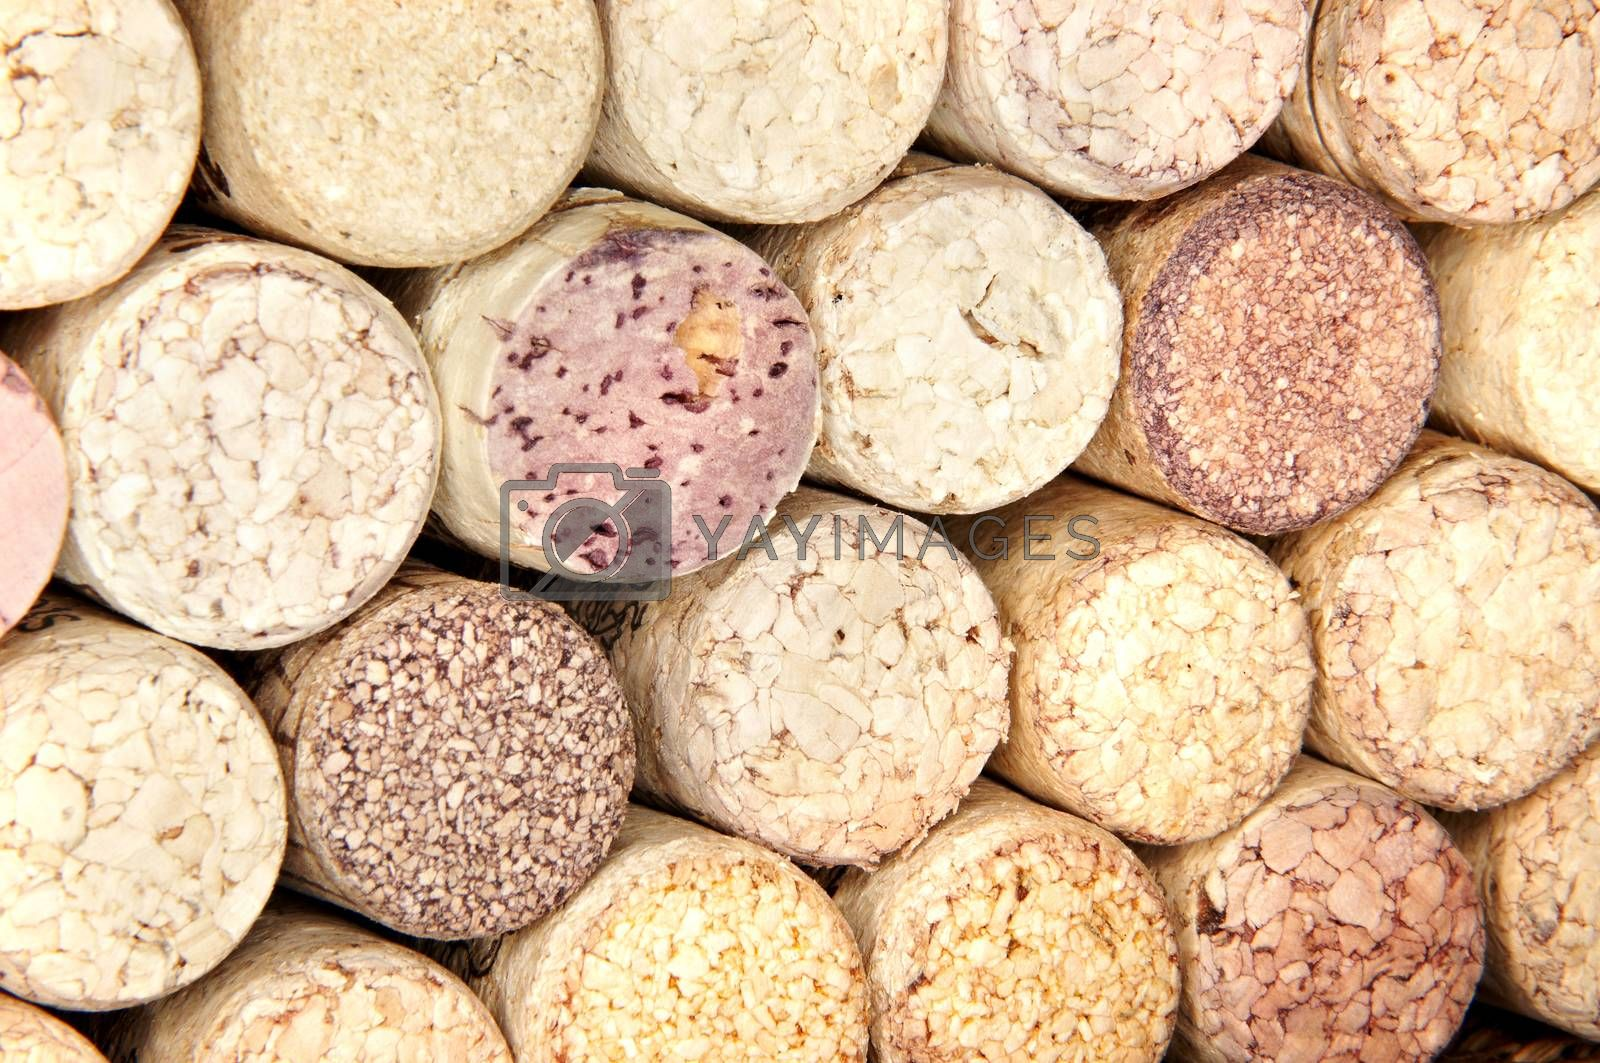 Royalty free image of wine corks by emirkoo